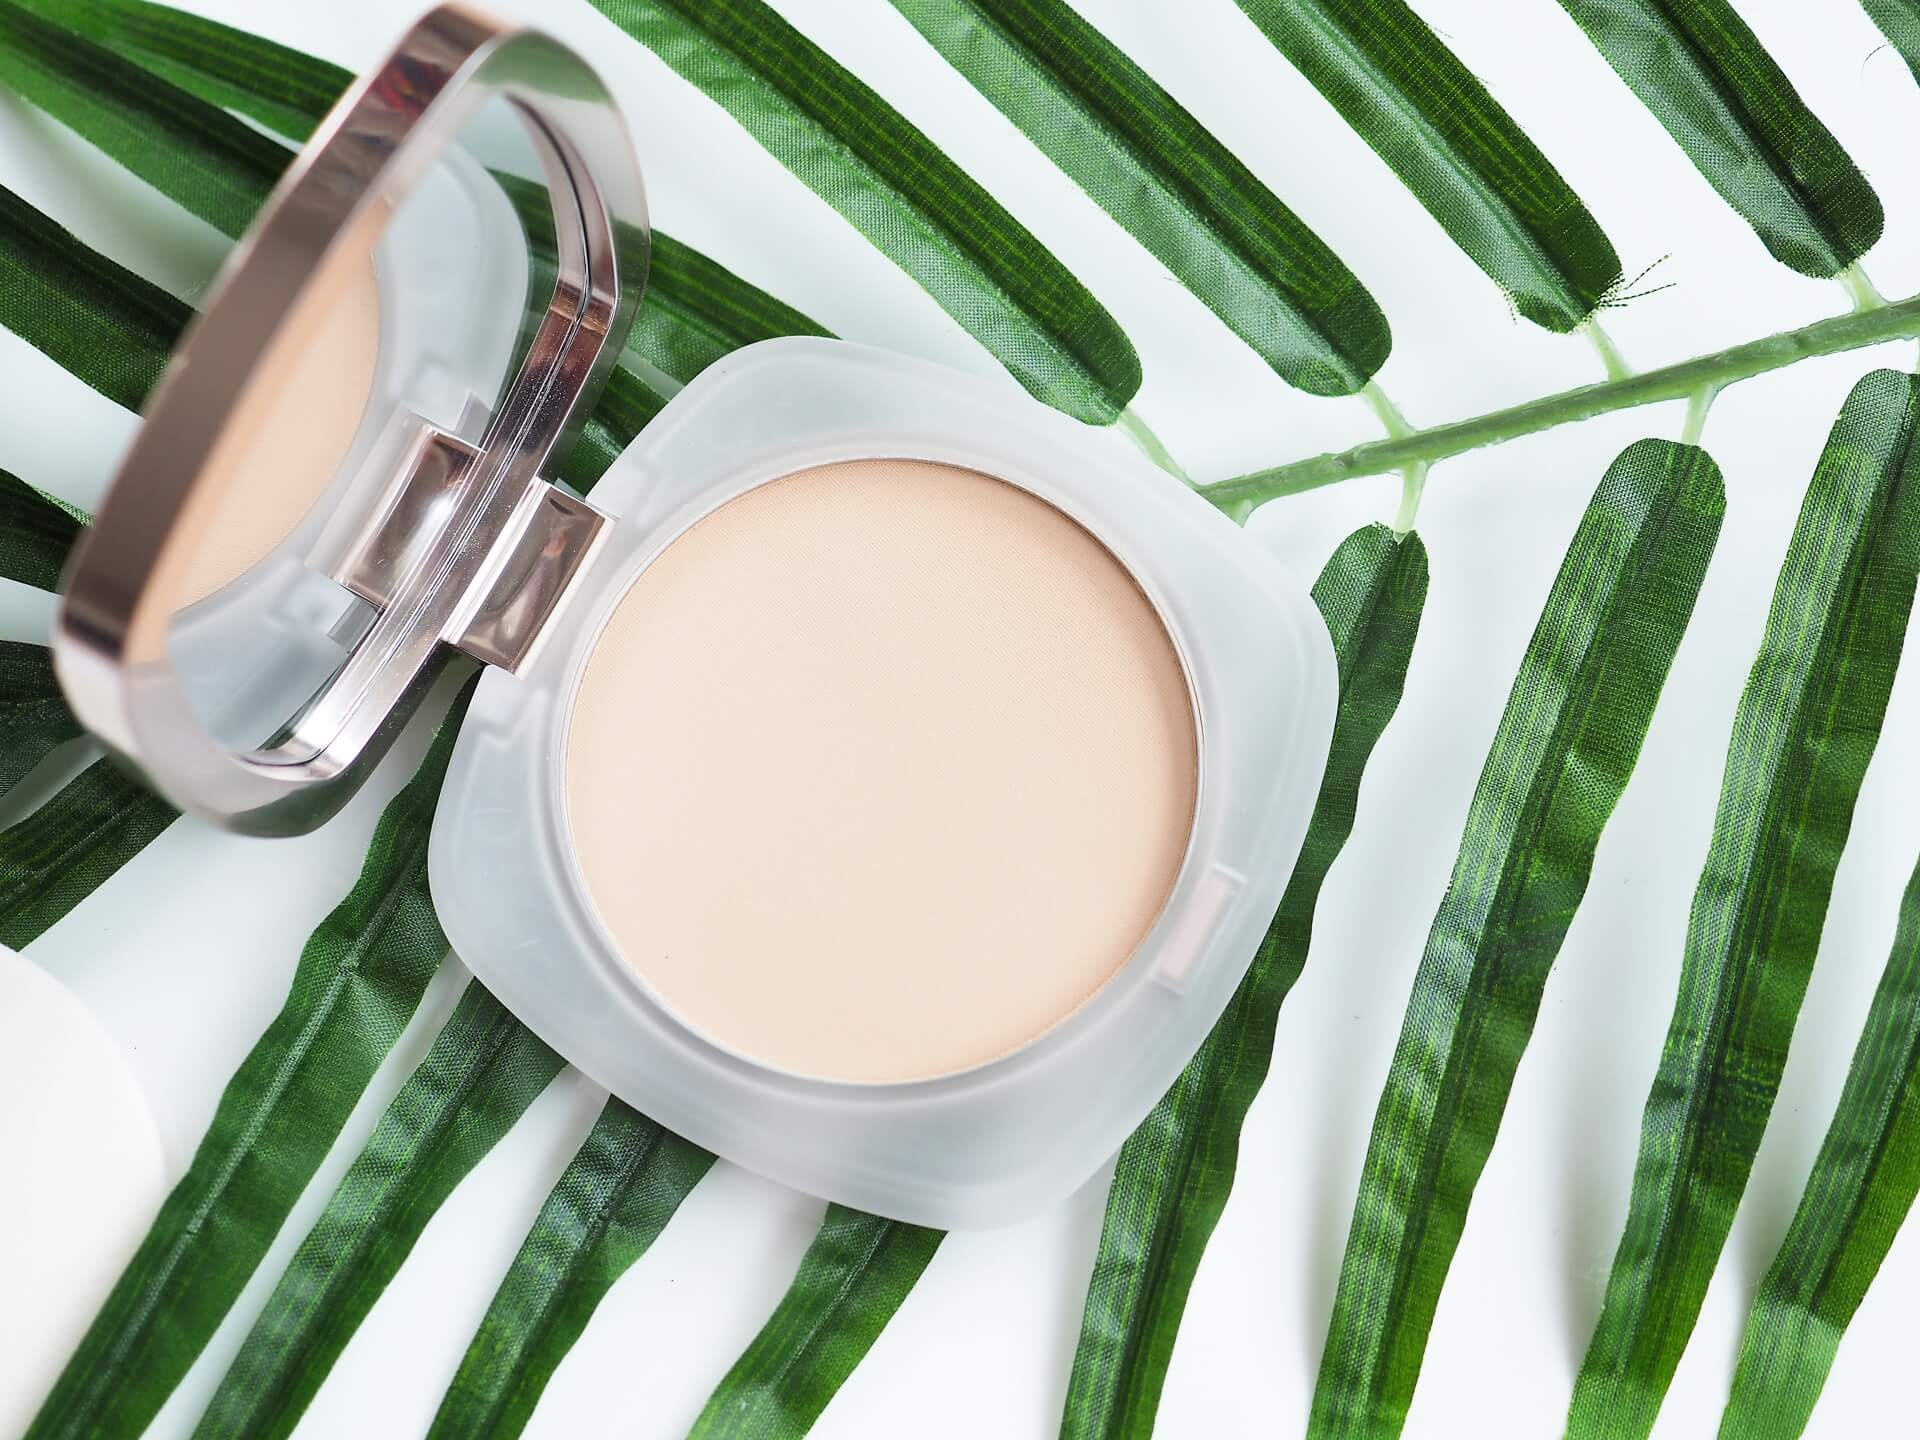 La Mer The Sheer Pressed Powder